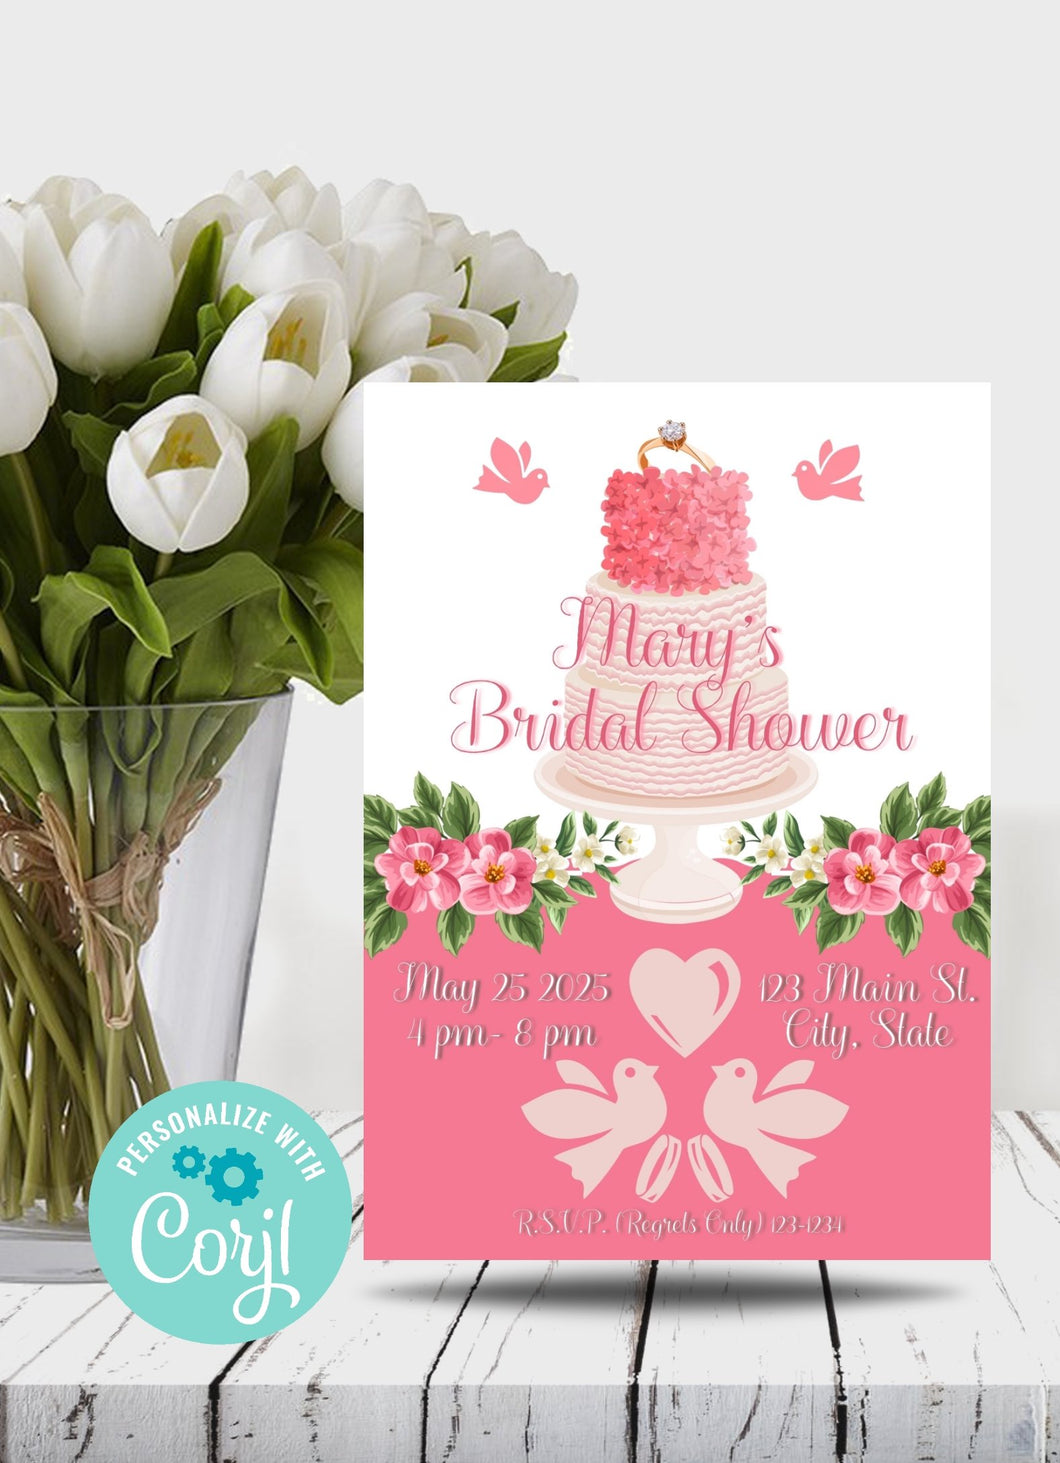 Bridal Shower Cake Party Invitation - Sunny Jar Personalized Designs